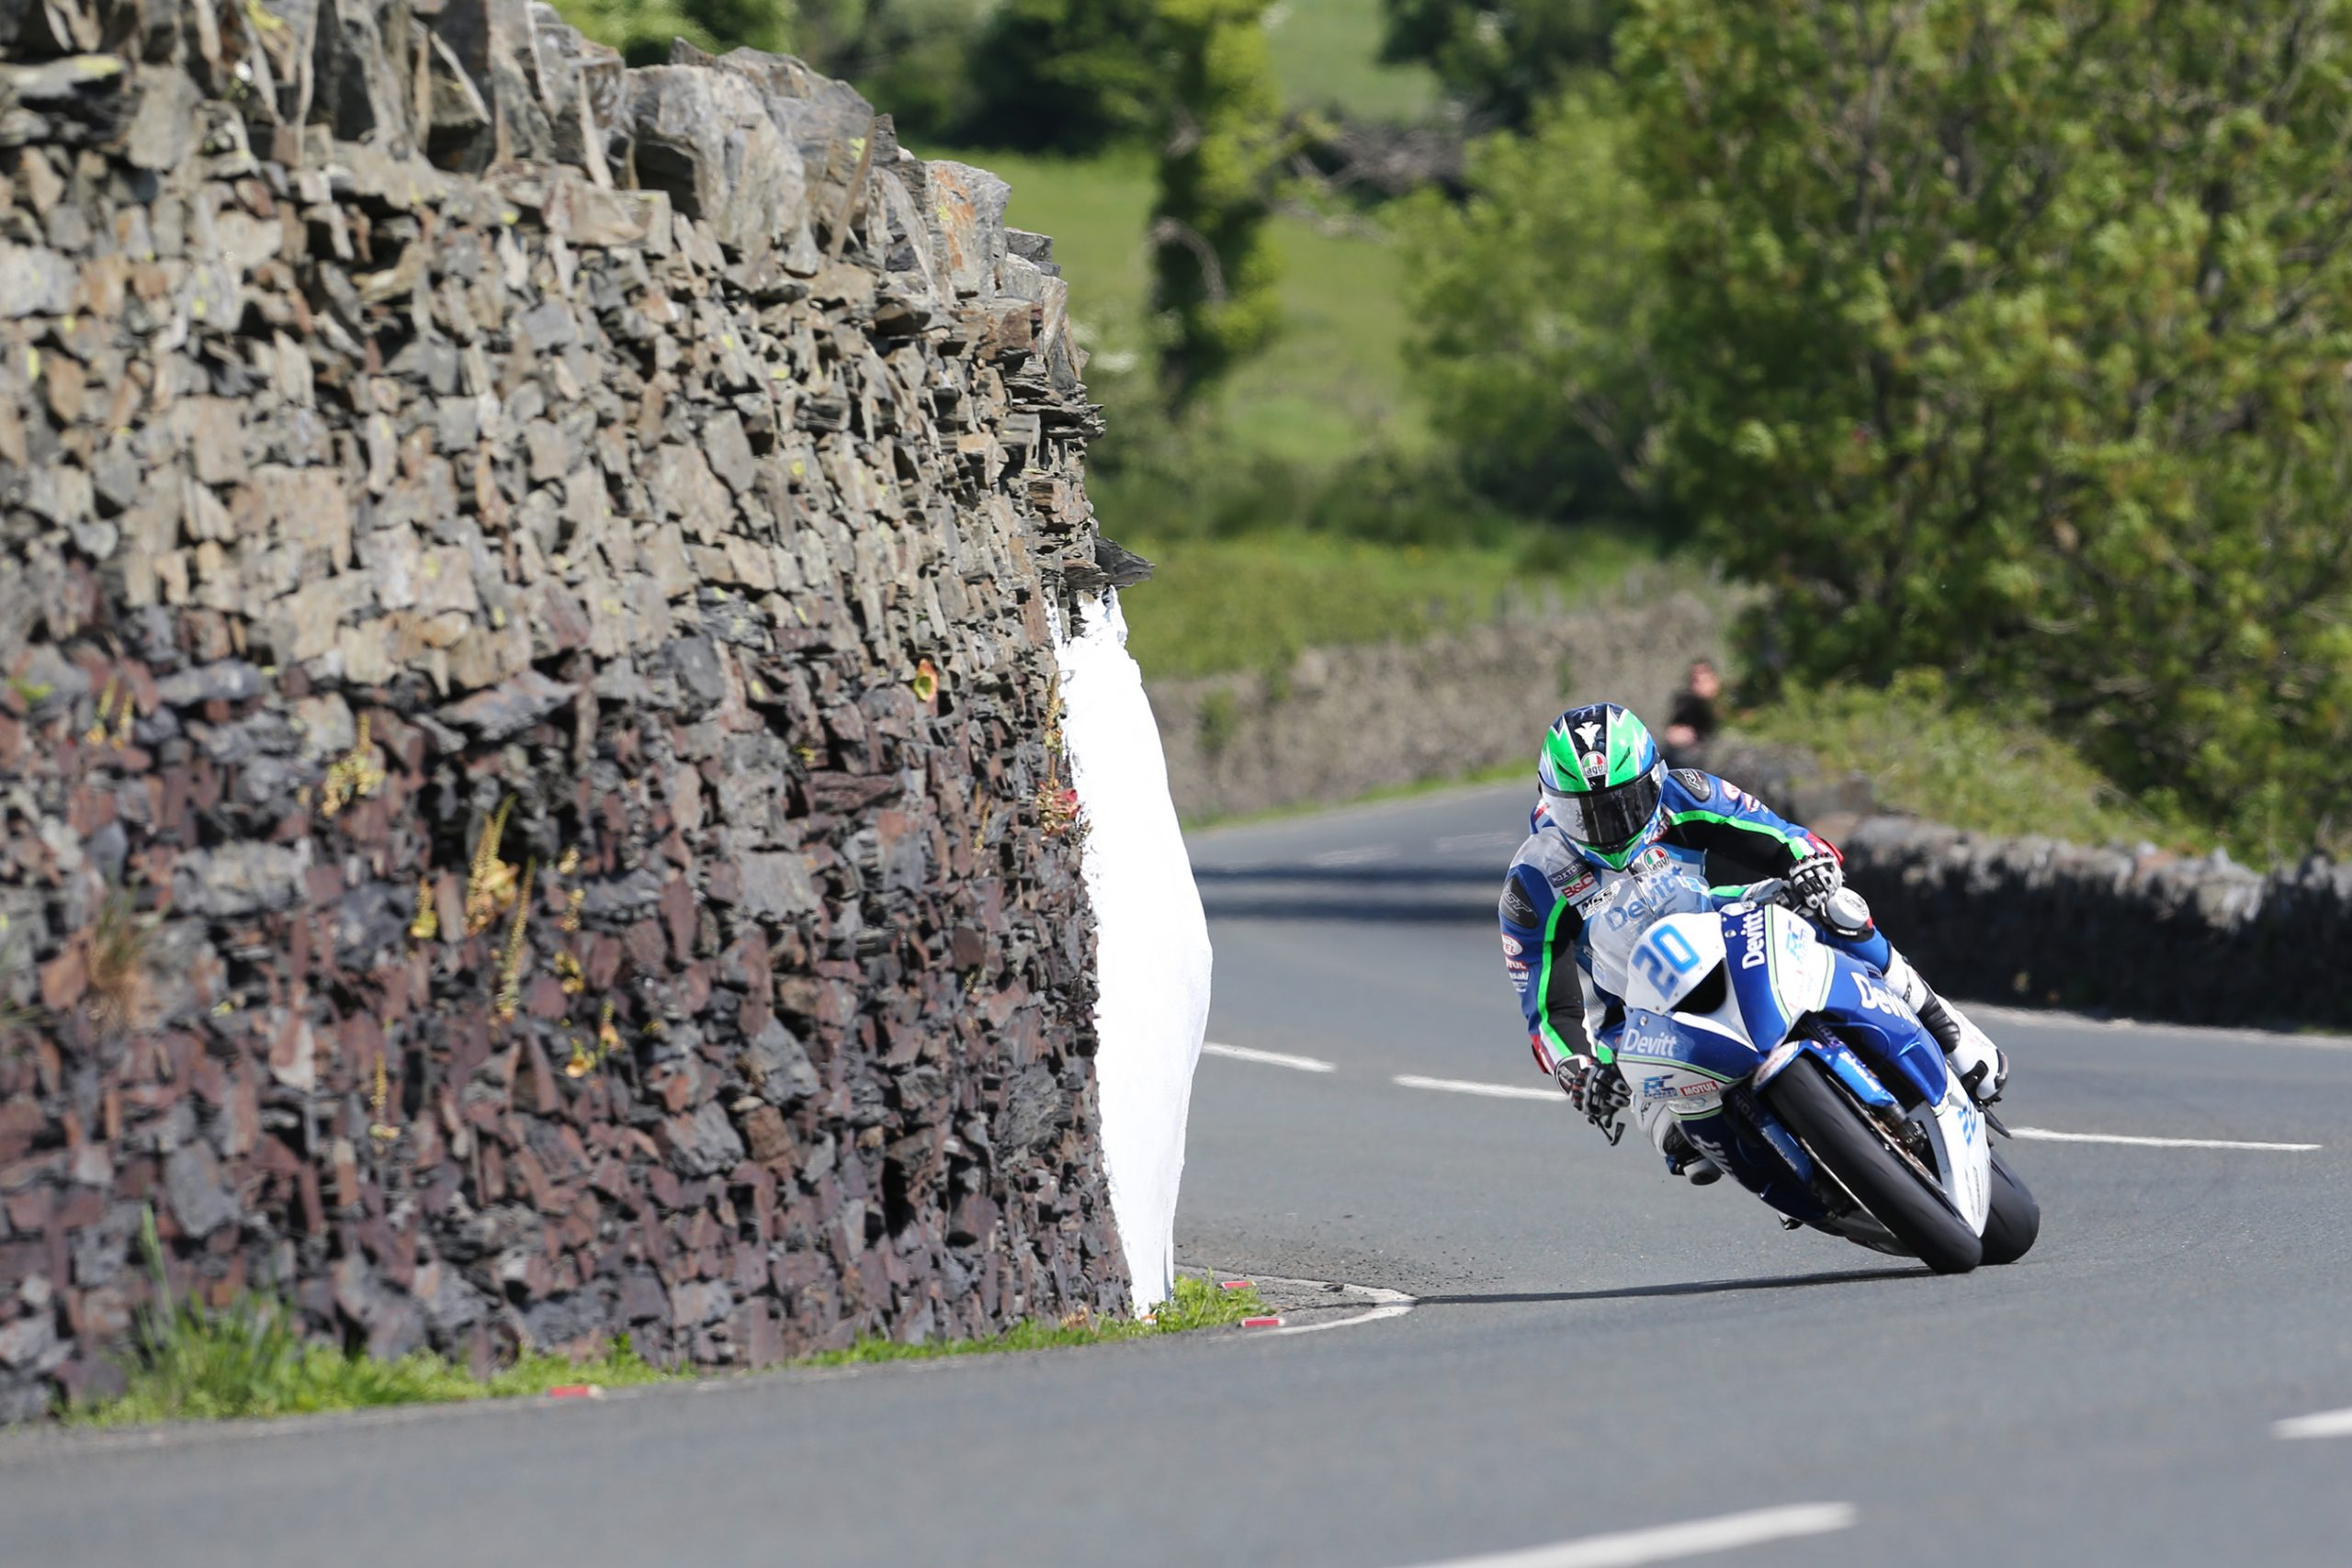 Ivan Lintin racing at the TT 2016 credit Stephen Davison, Pacemaker Press International